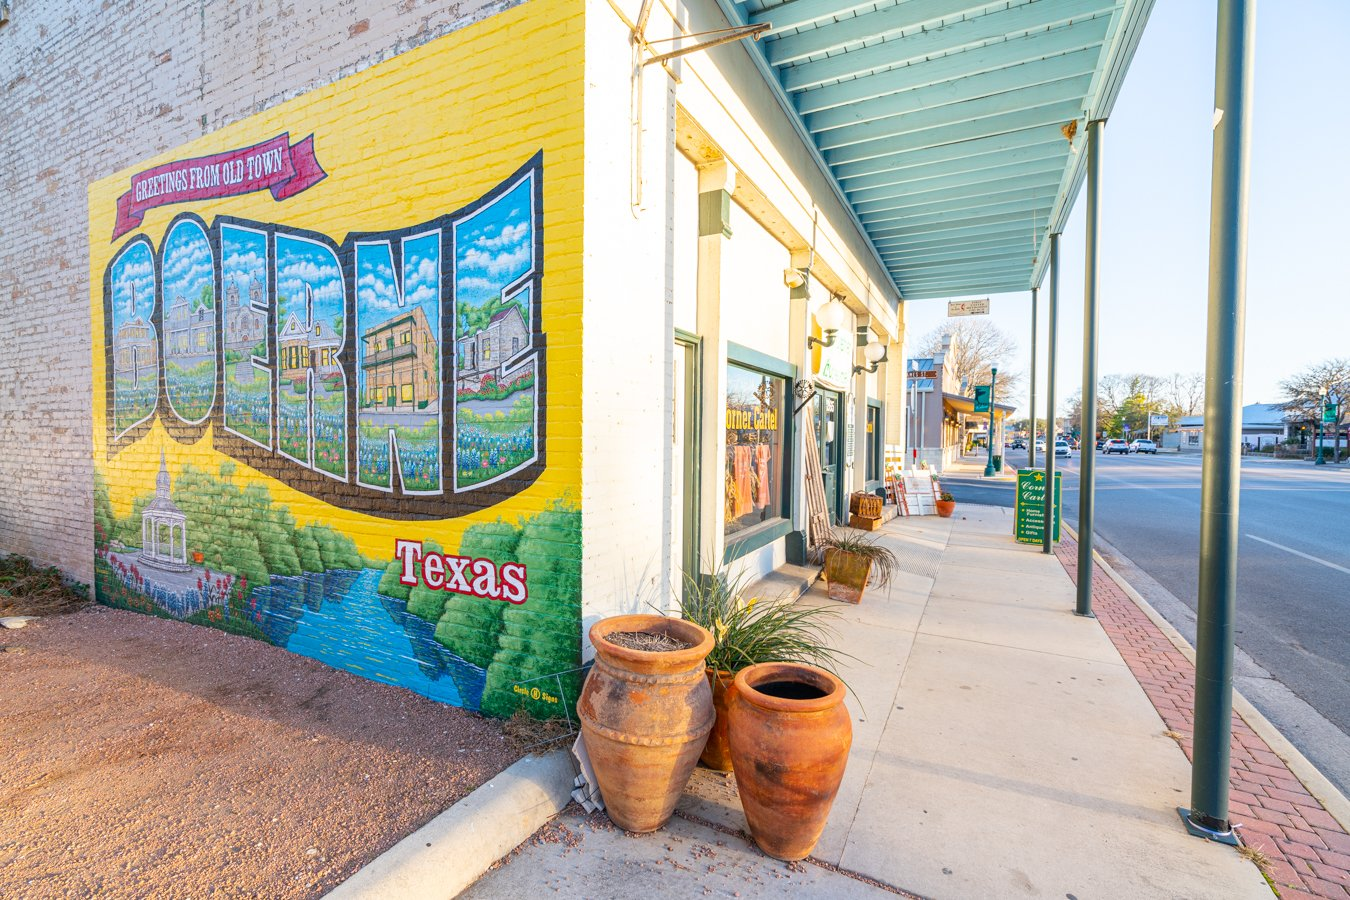 mural in boerne texas, painted on the side of a brick building. exploring downtown is one of the best things to do in boerne tx